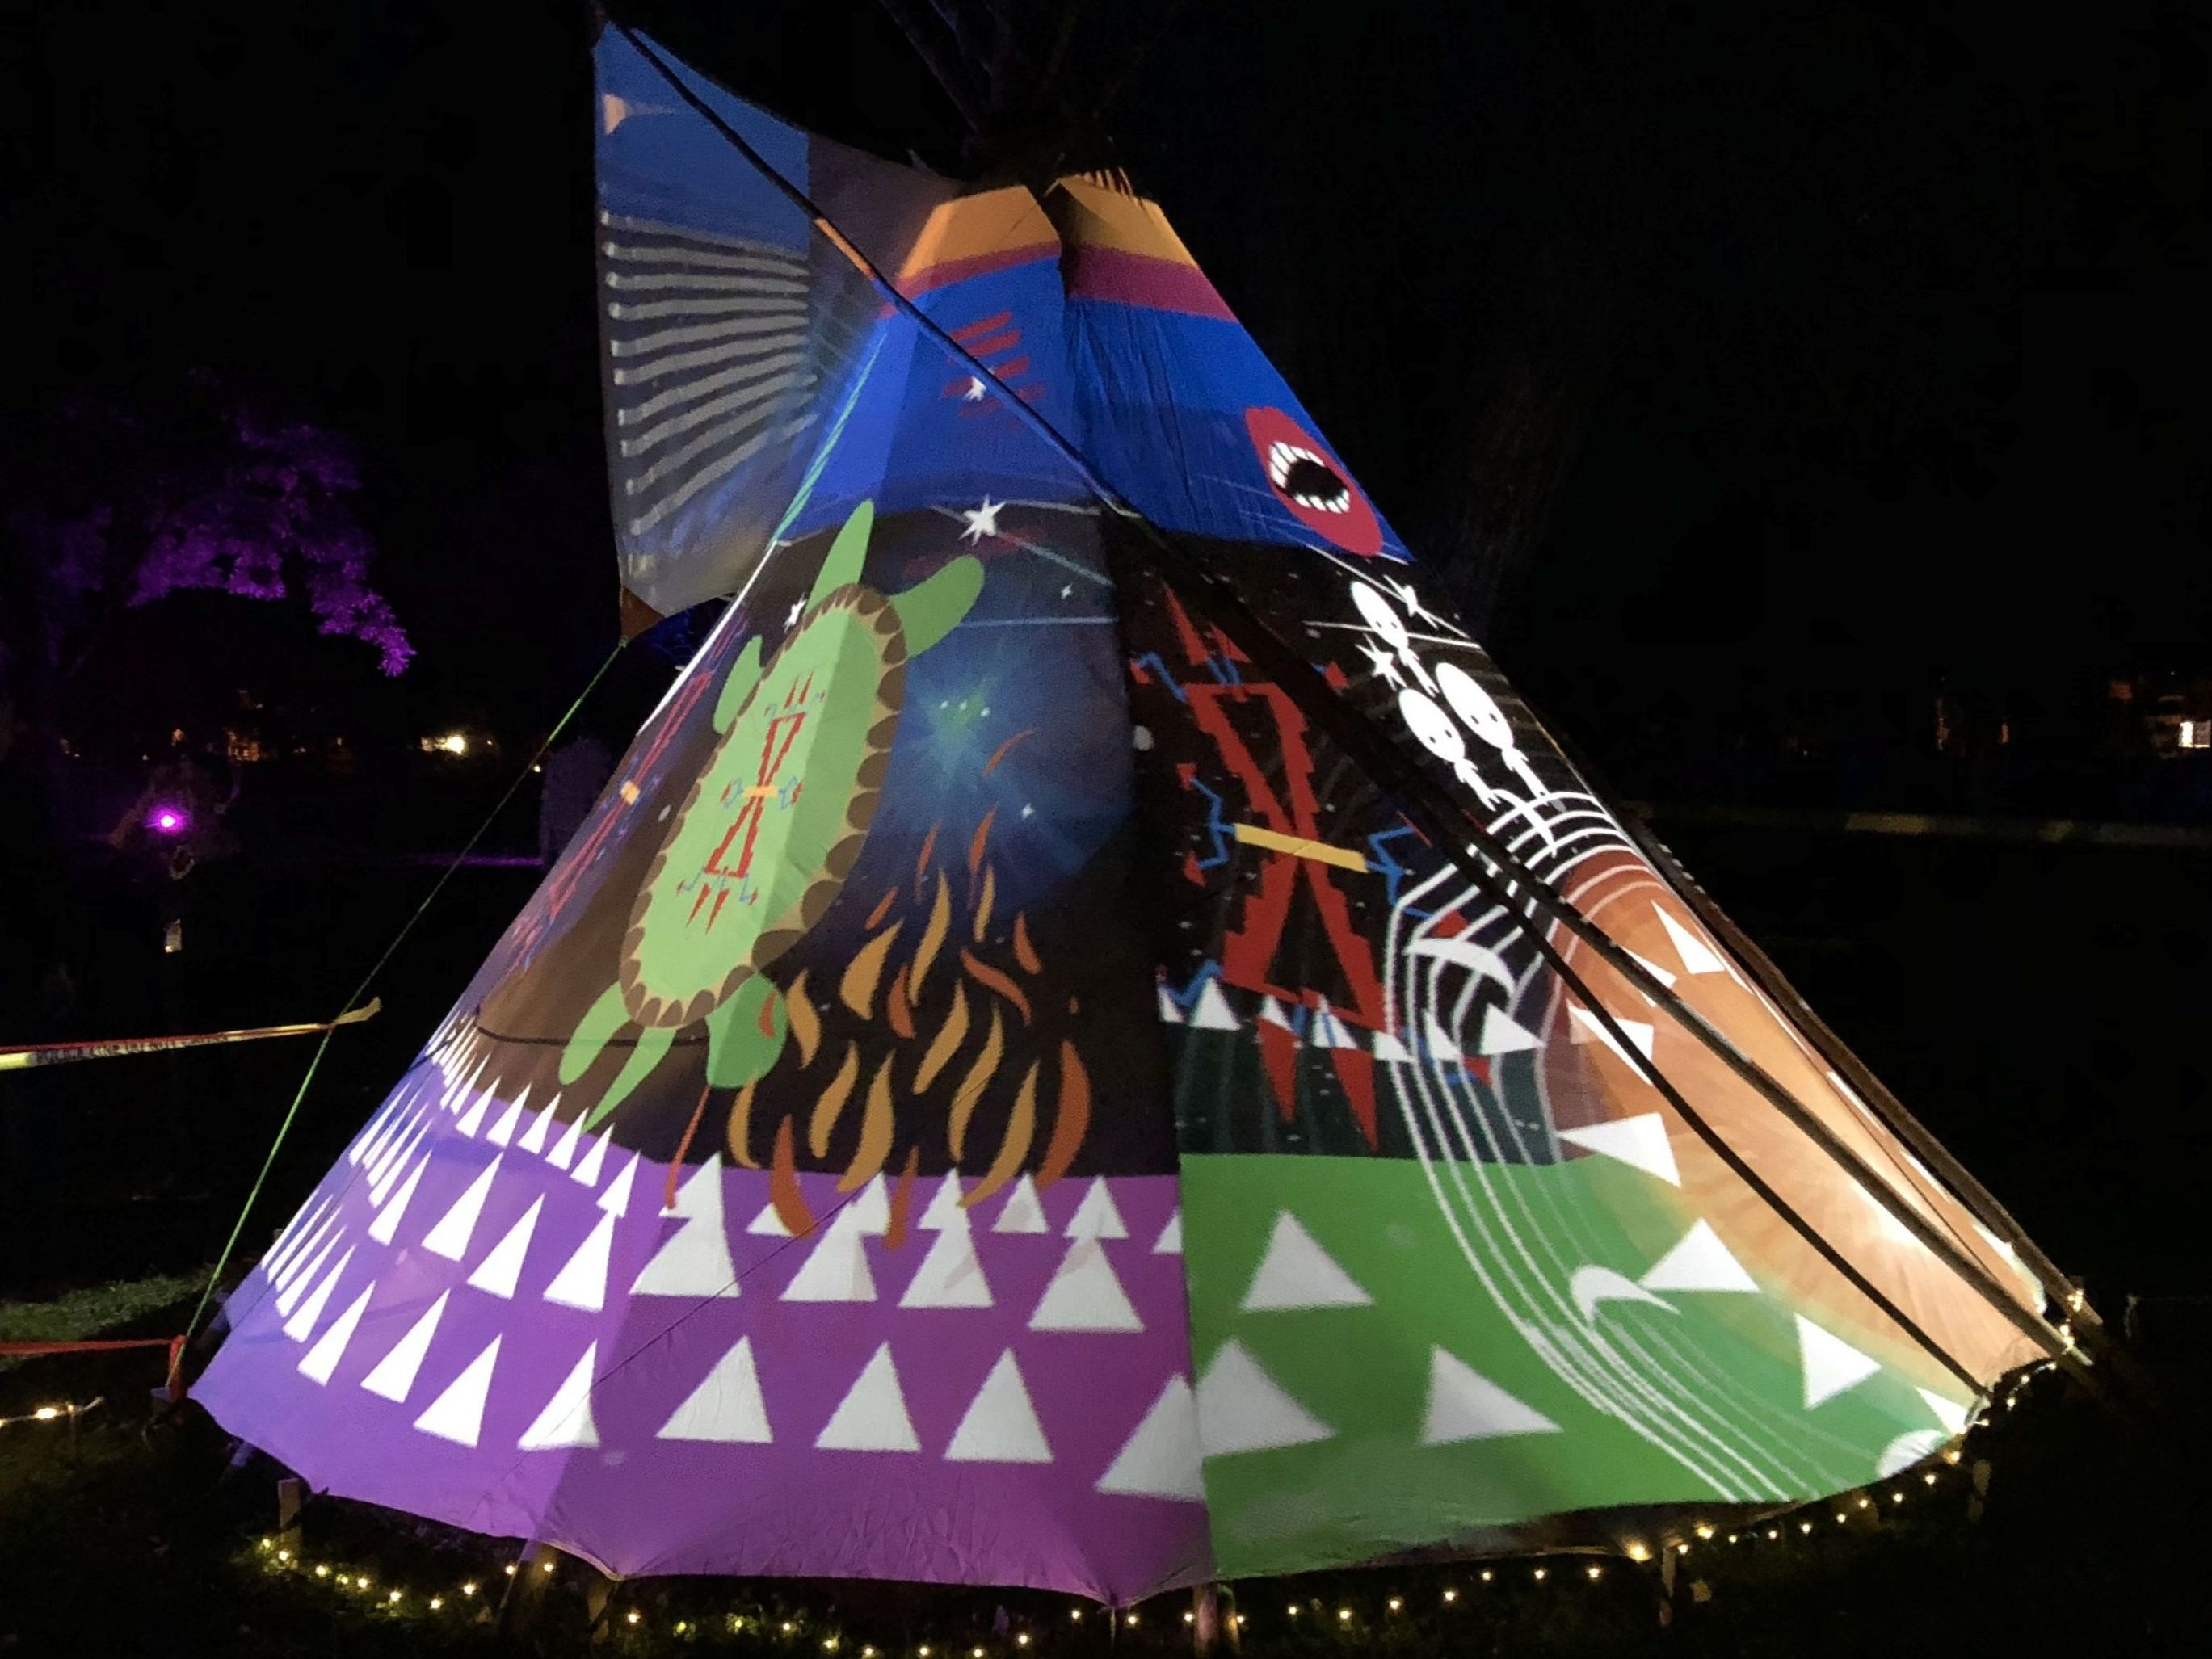 Image of Tipi with projection art